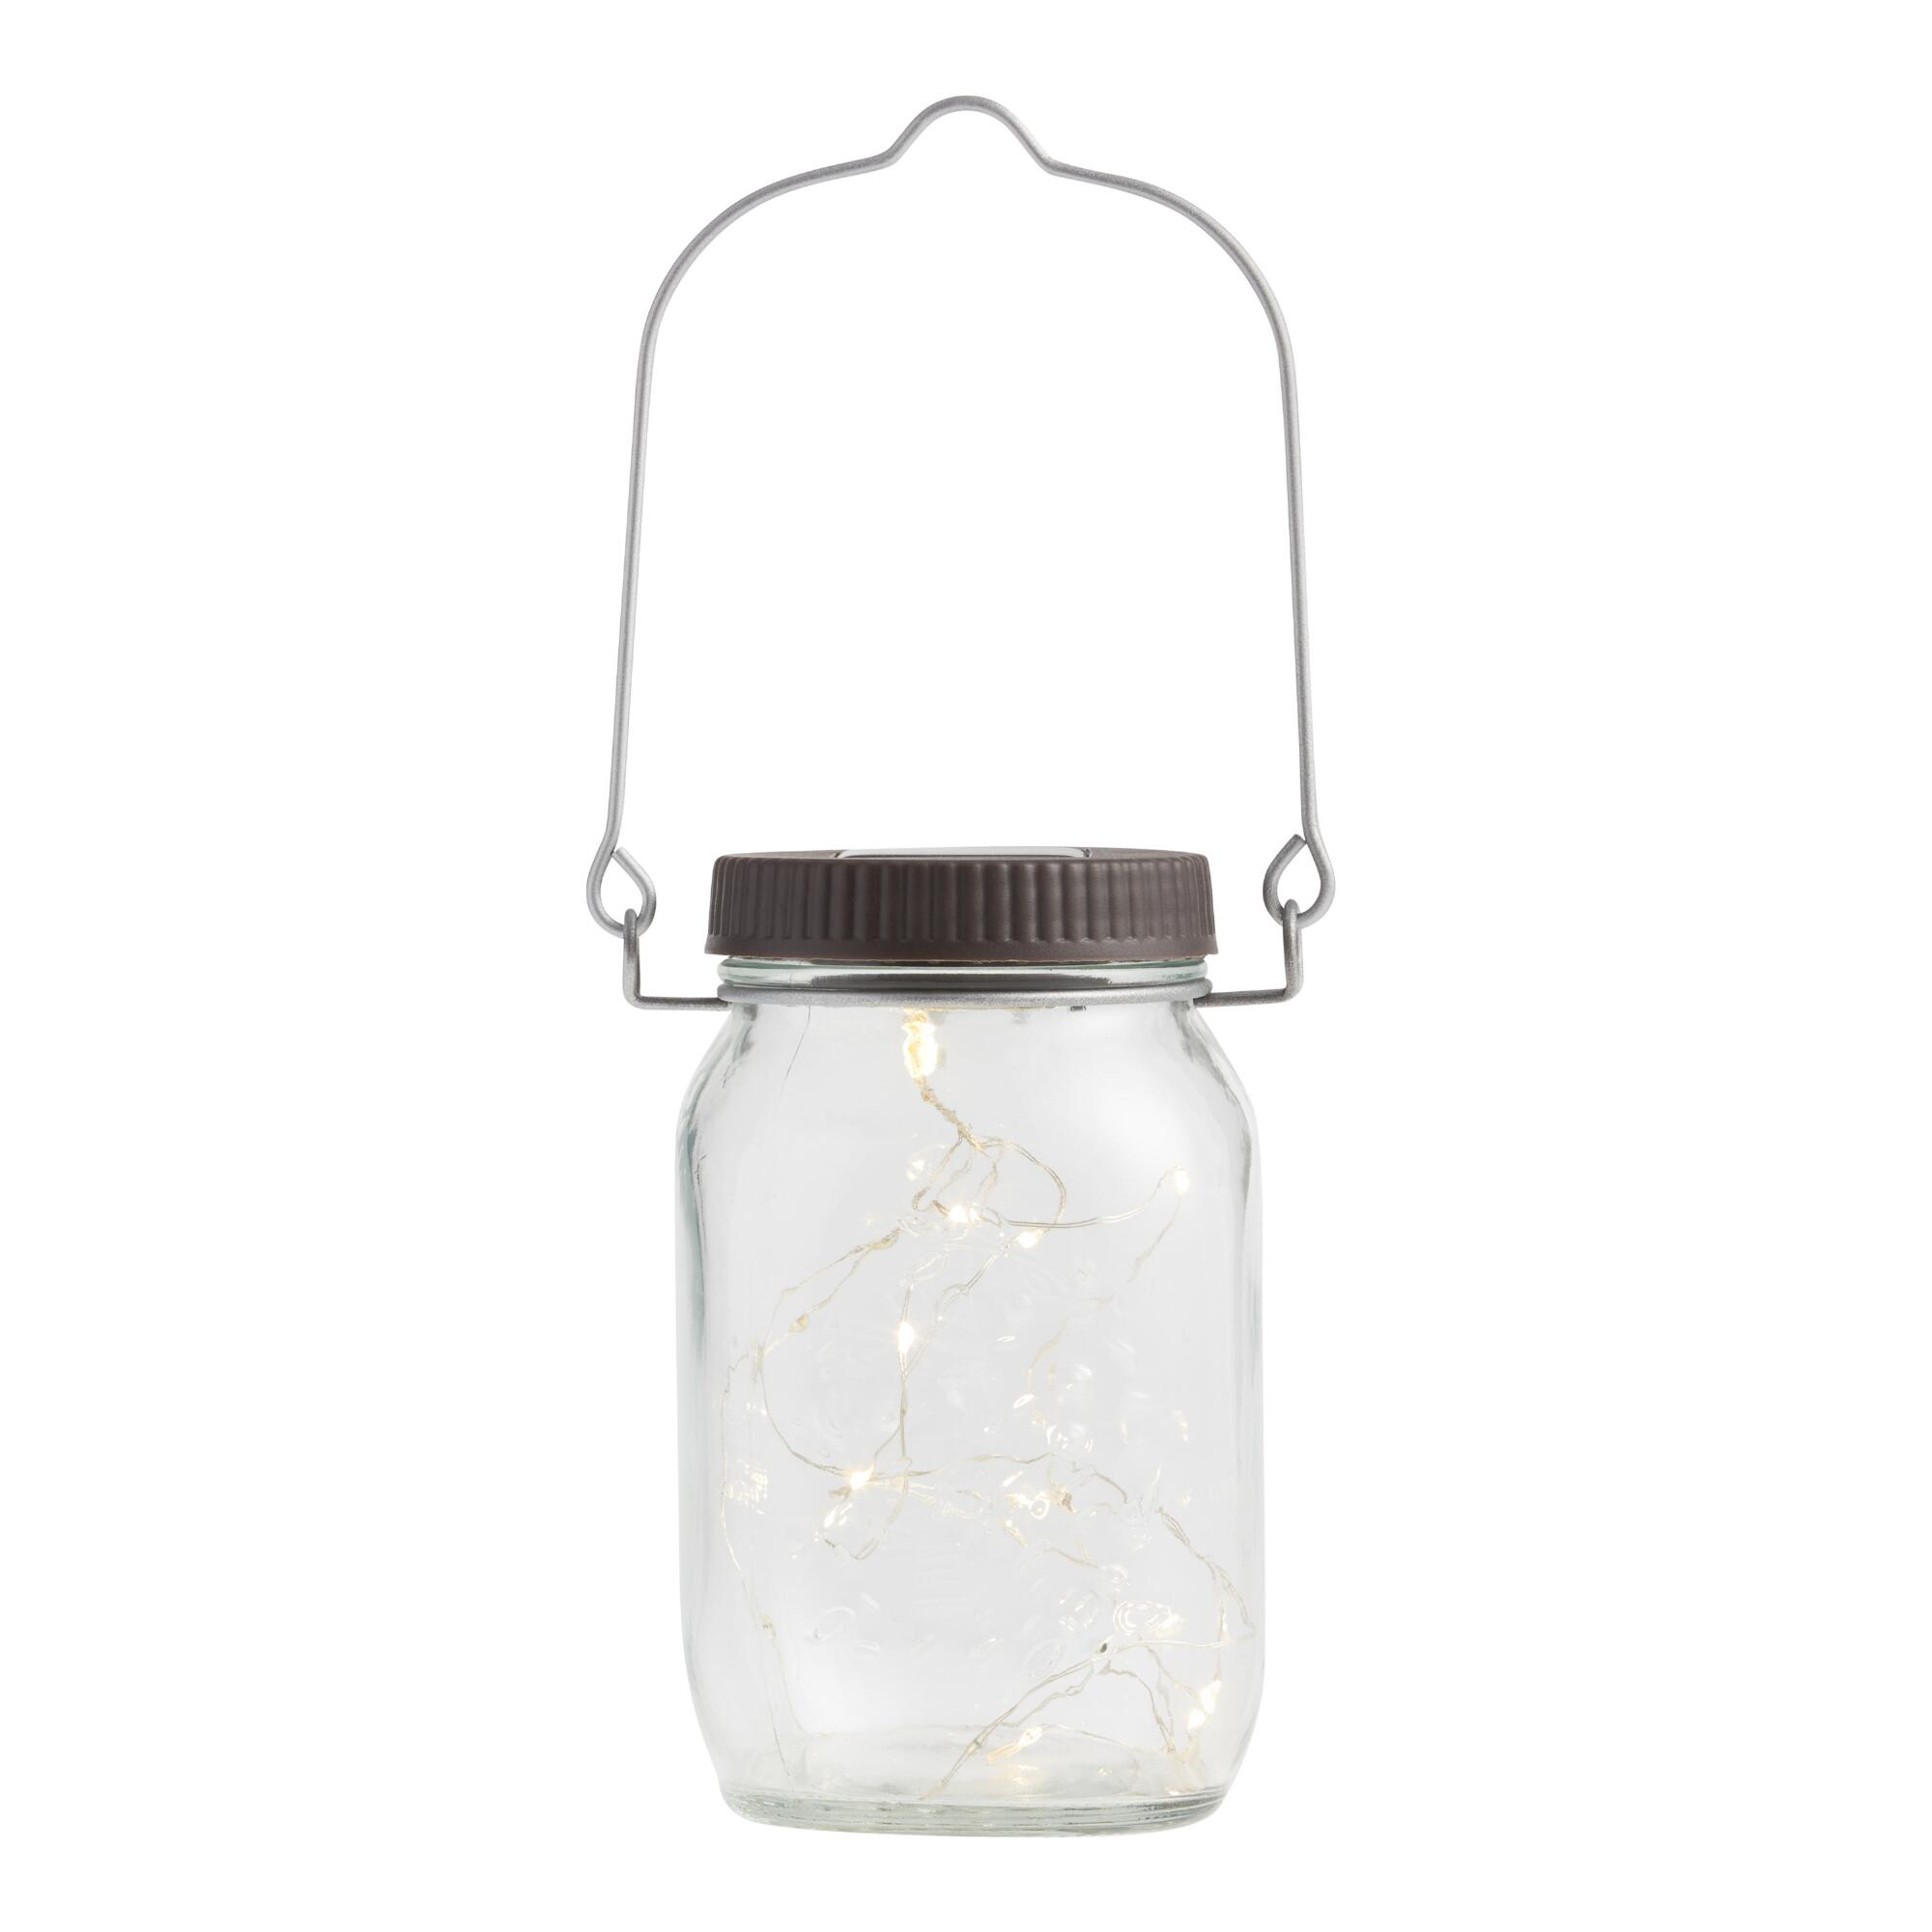 Firefly Solar Led Mason Jar Lantern World Market